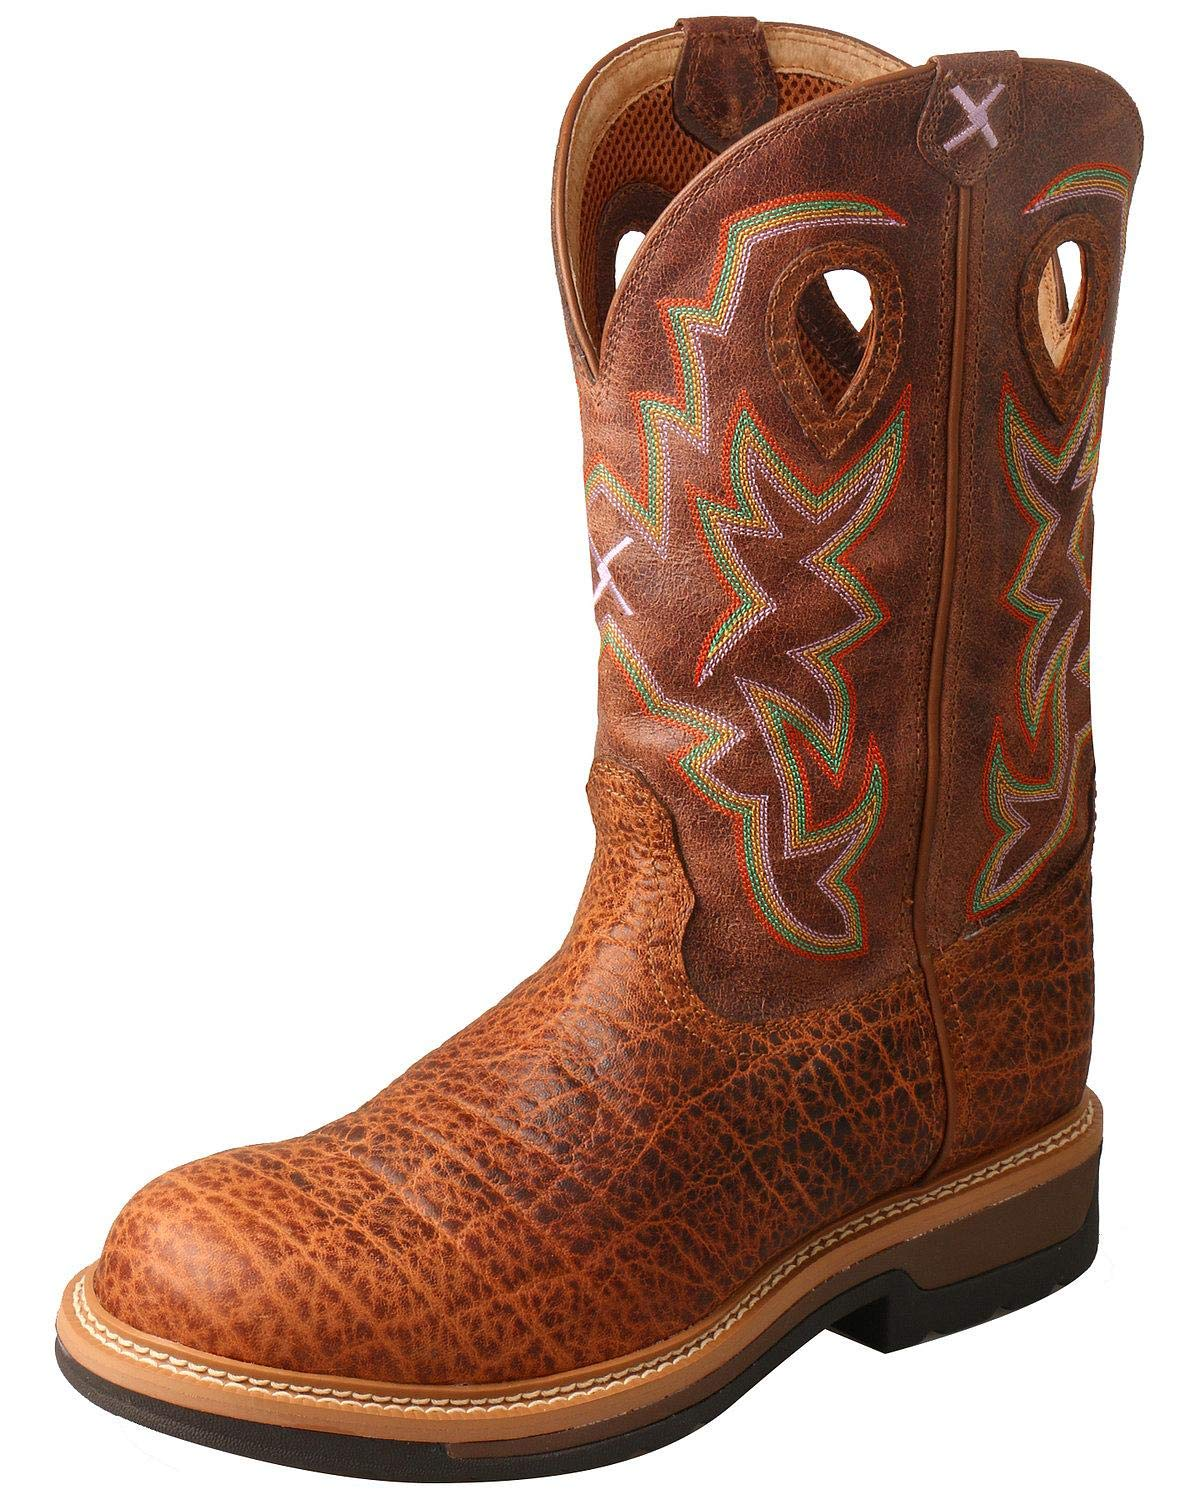 Twisted X Men's Lite Cowboy Elephant Print Western Work Boot Round Toe Tan 10.5 EE by Twisted X